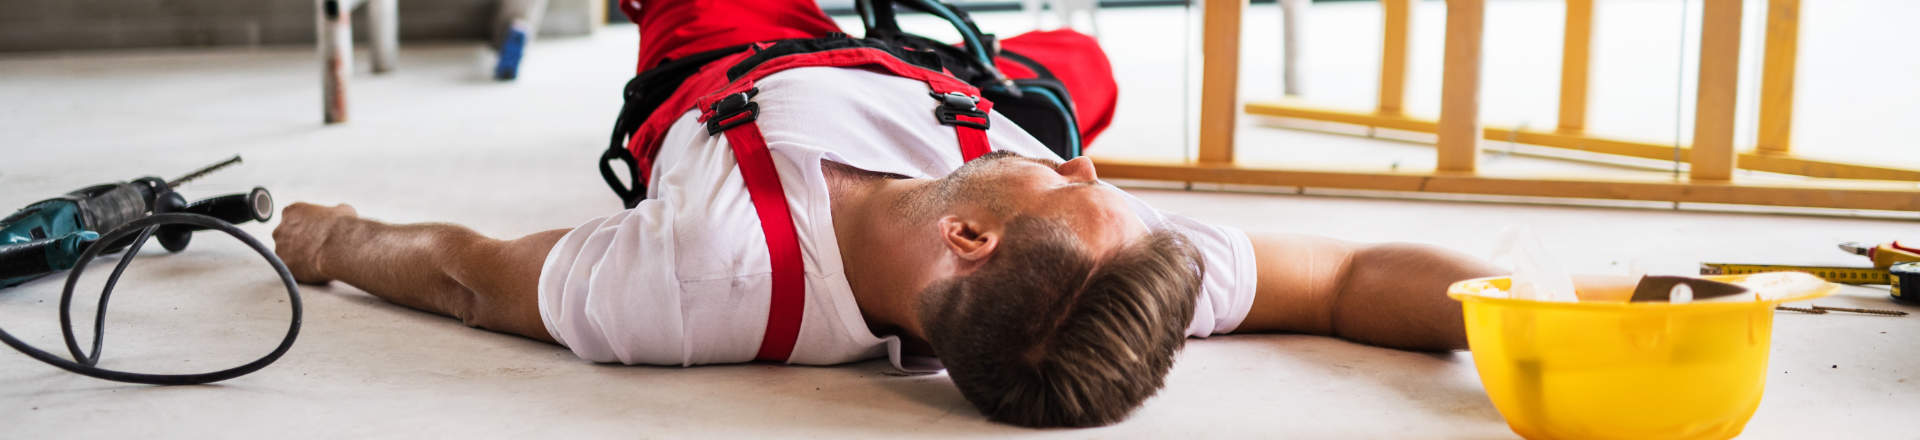 an injured man lying on the floor after having fallen off a defective ladder